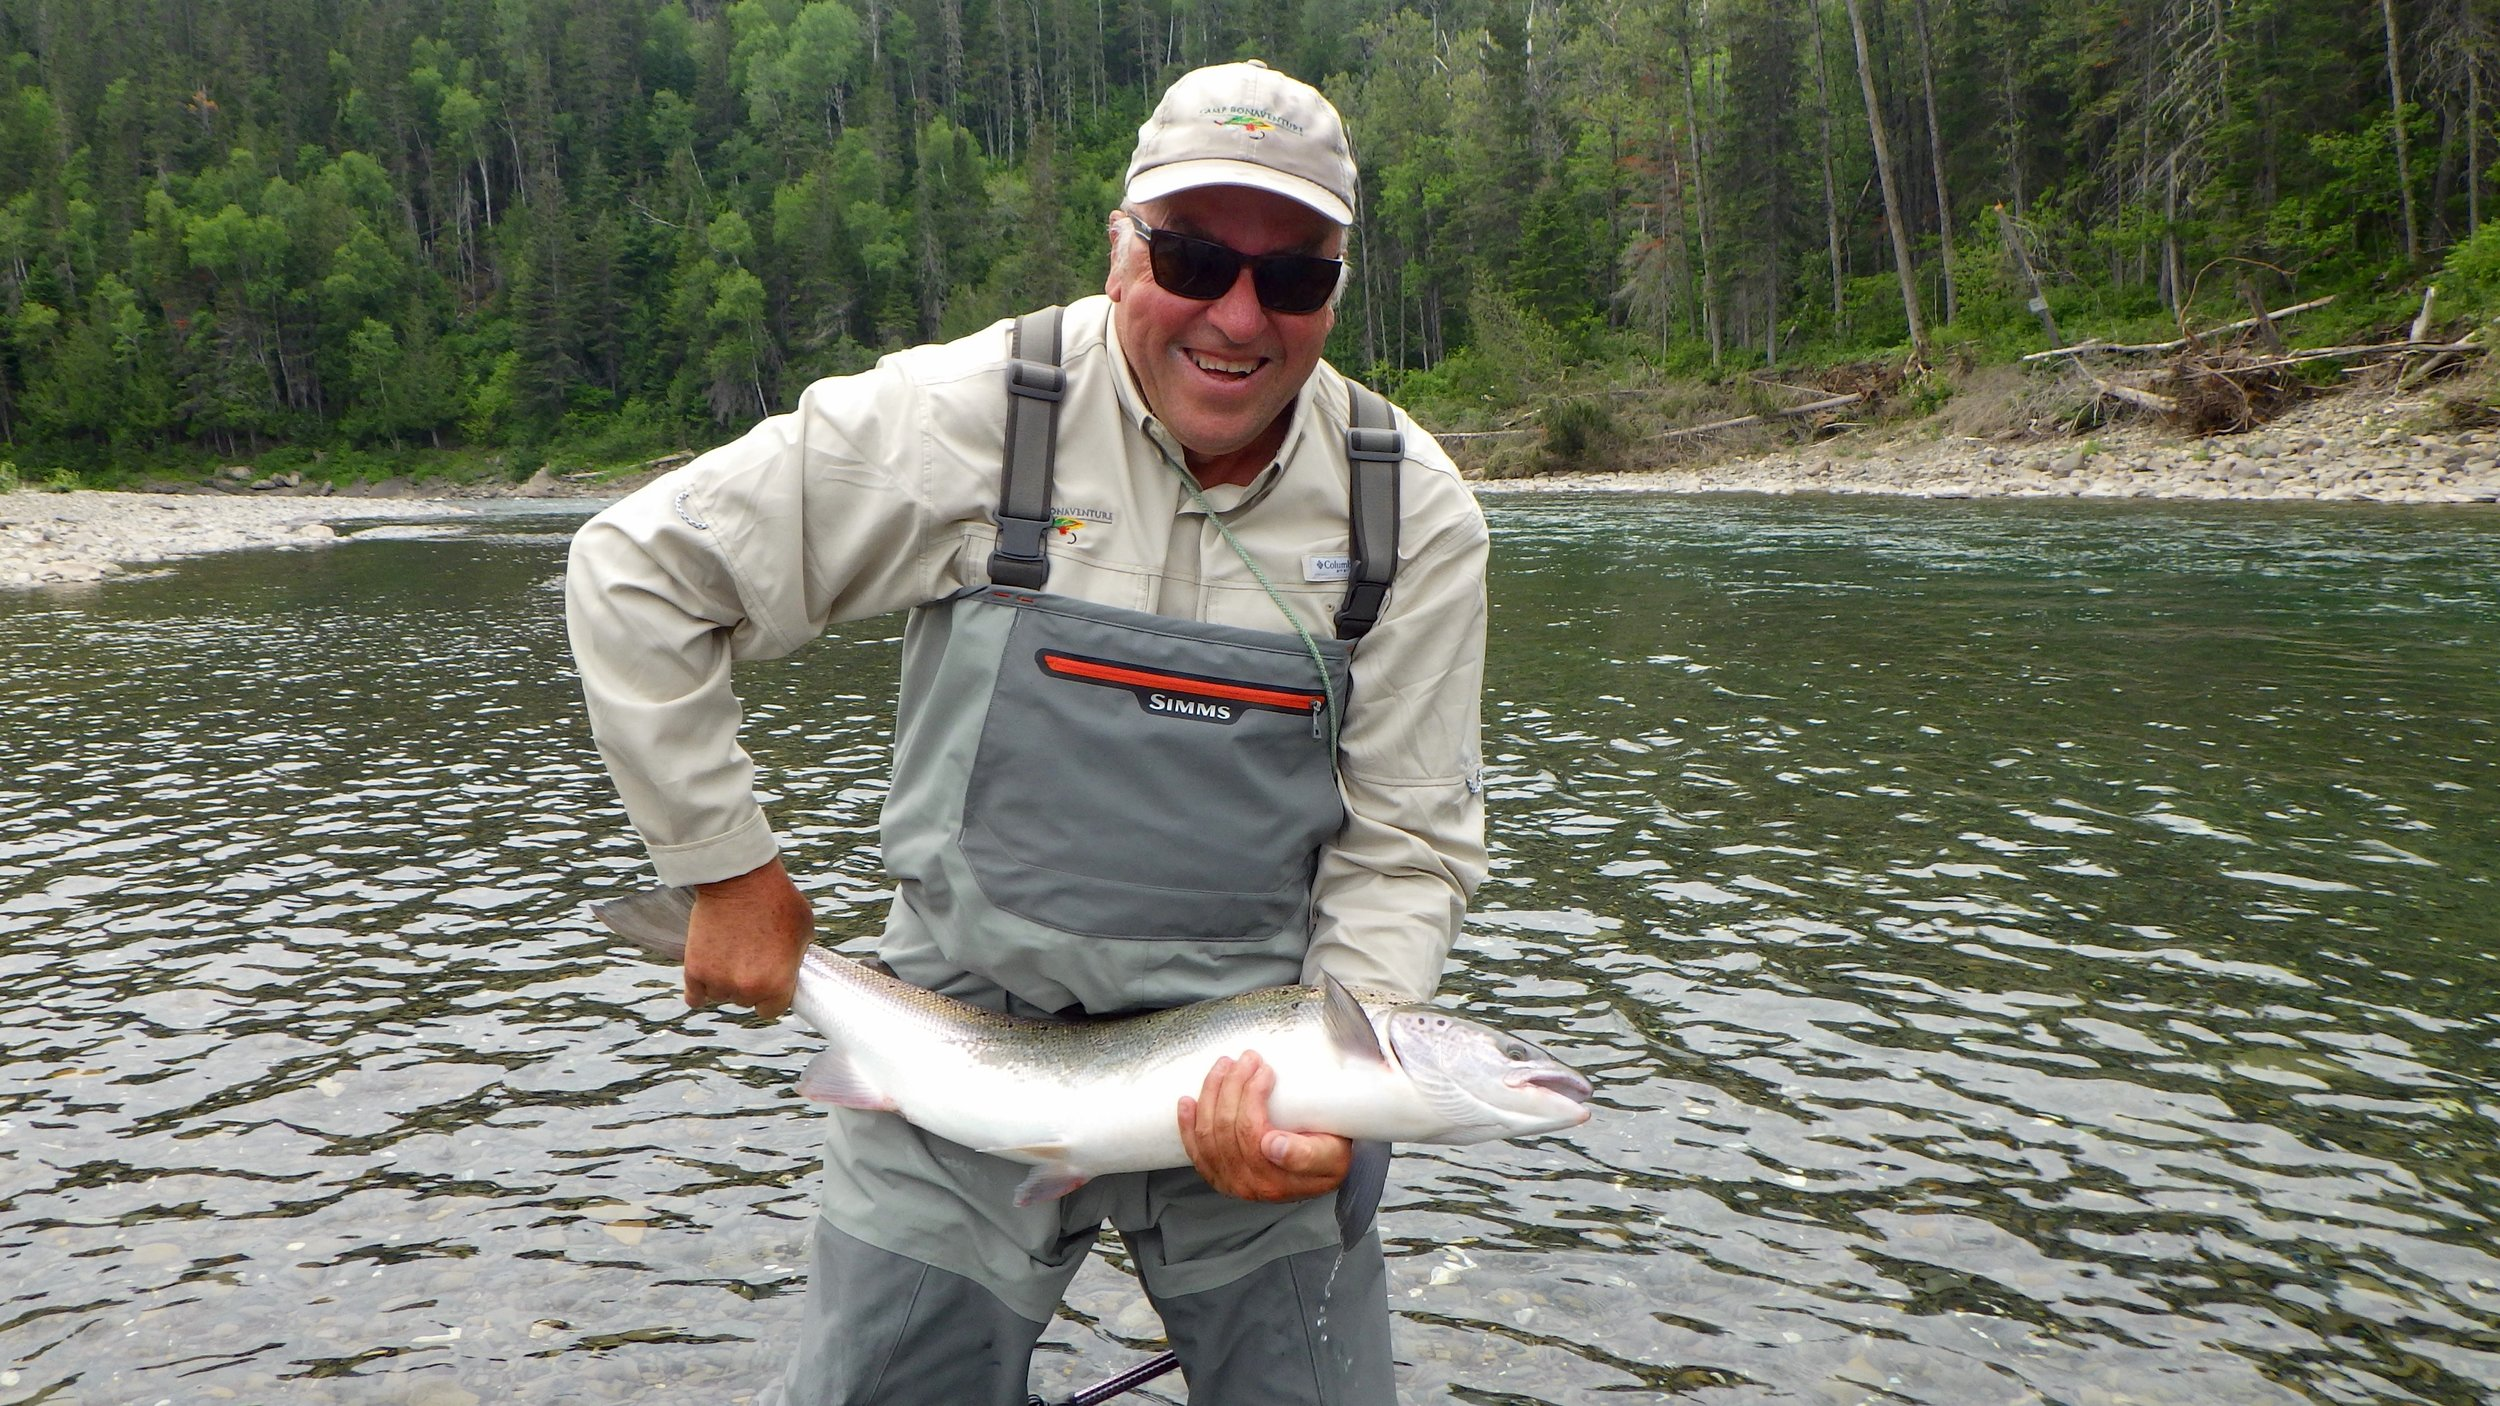 Scott Brown from the UK with his first Salmon from this side of the pond, nicely done Scott!